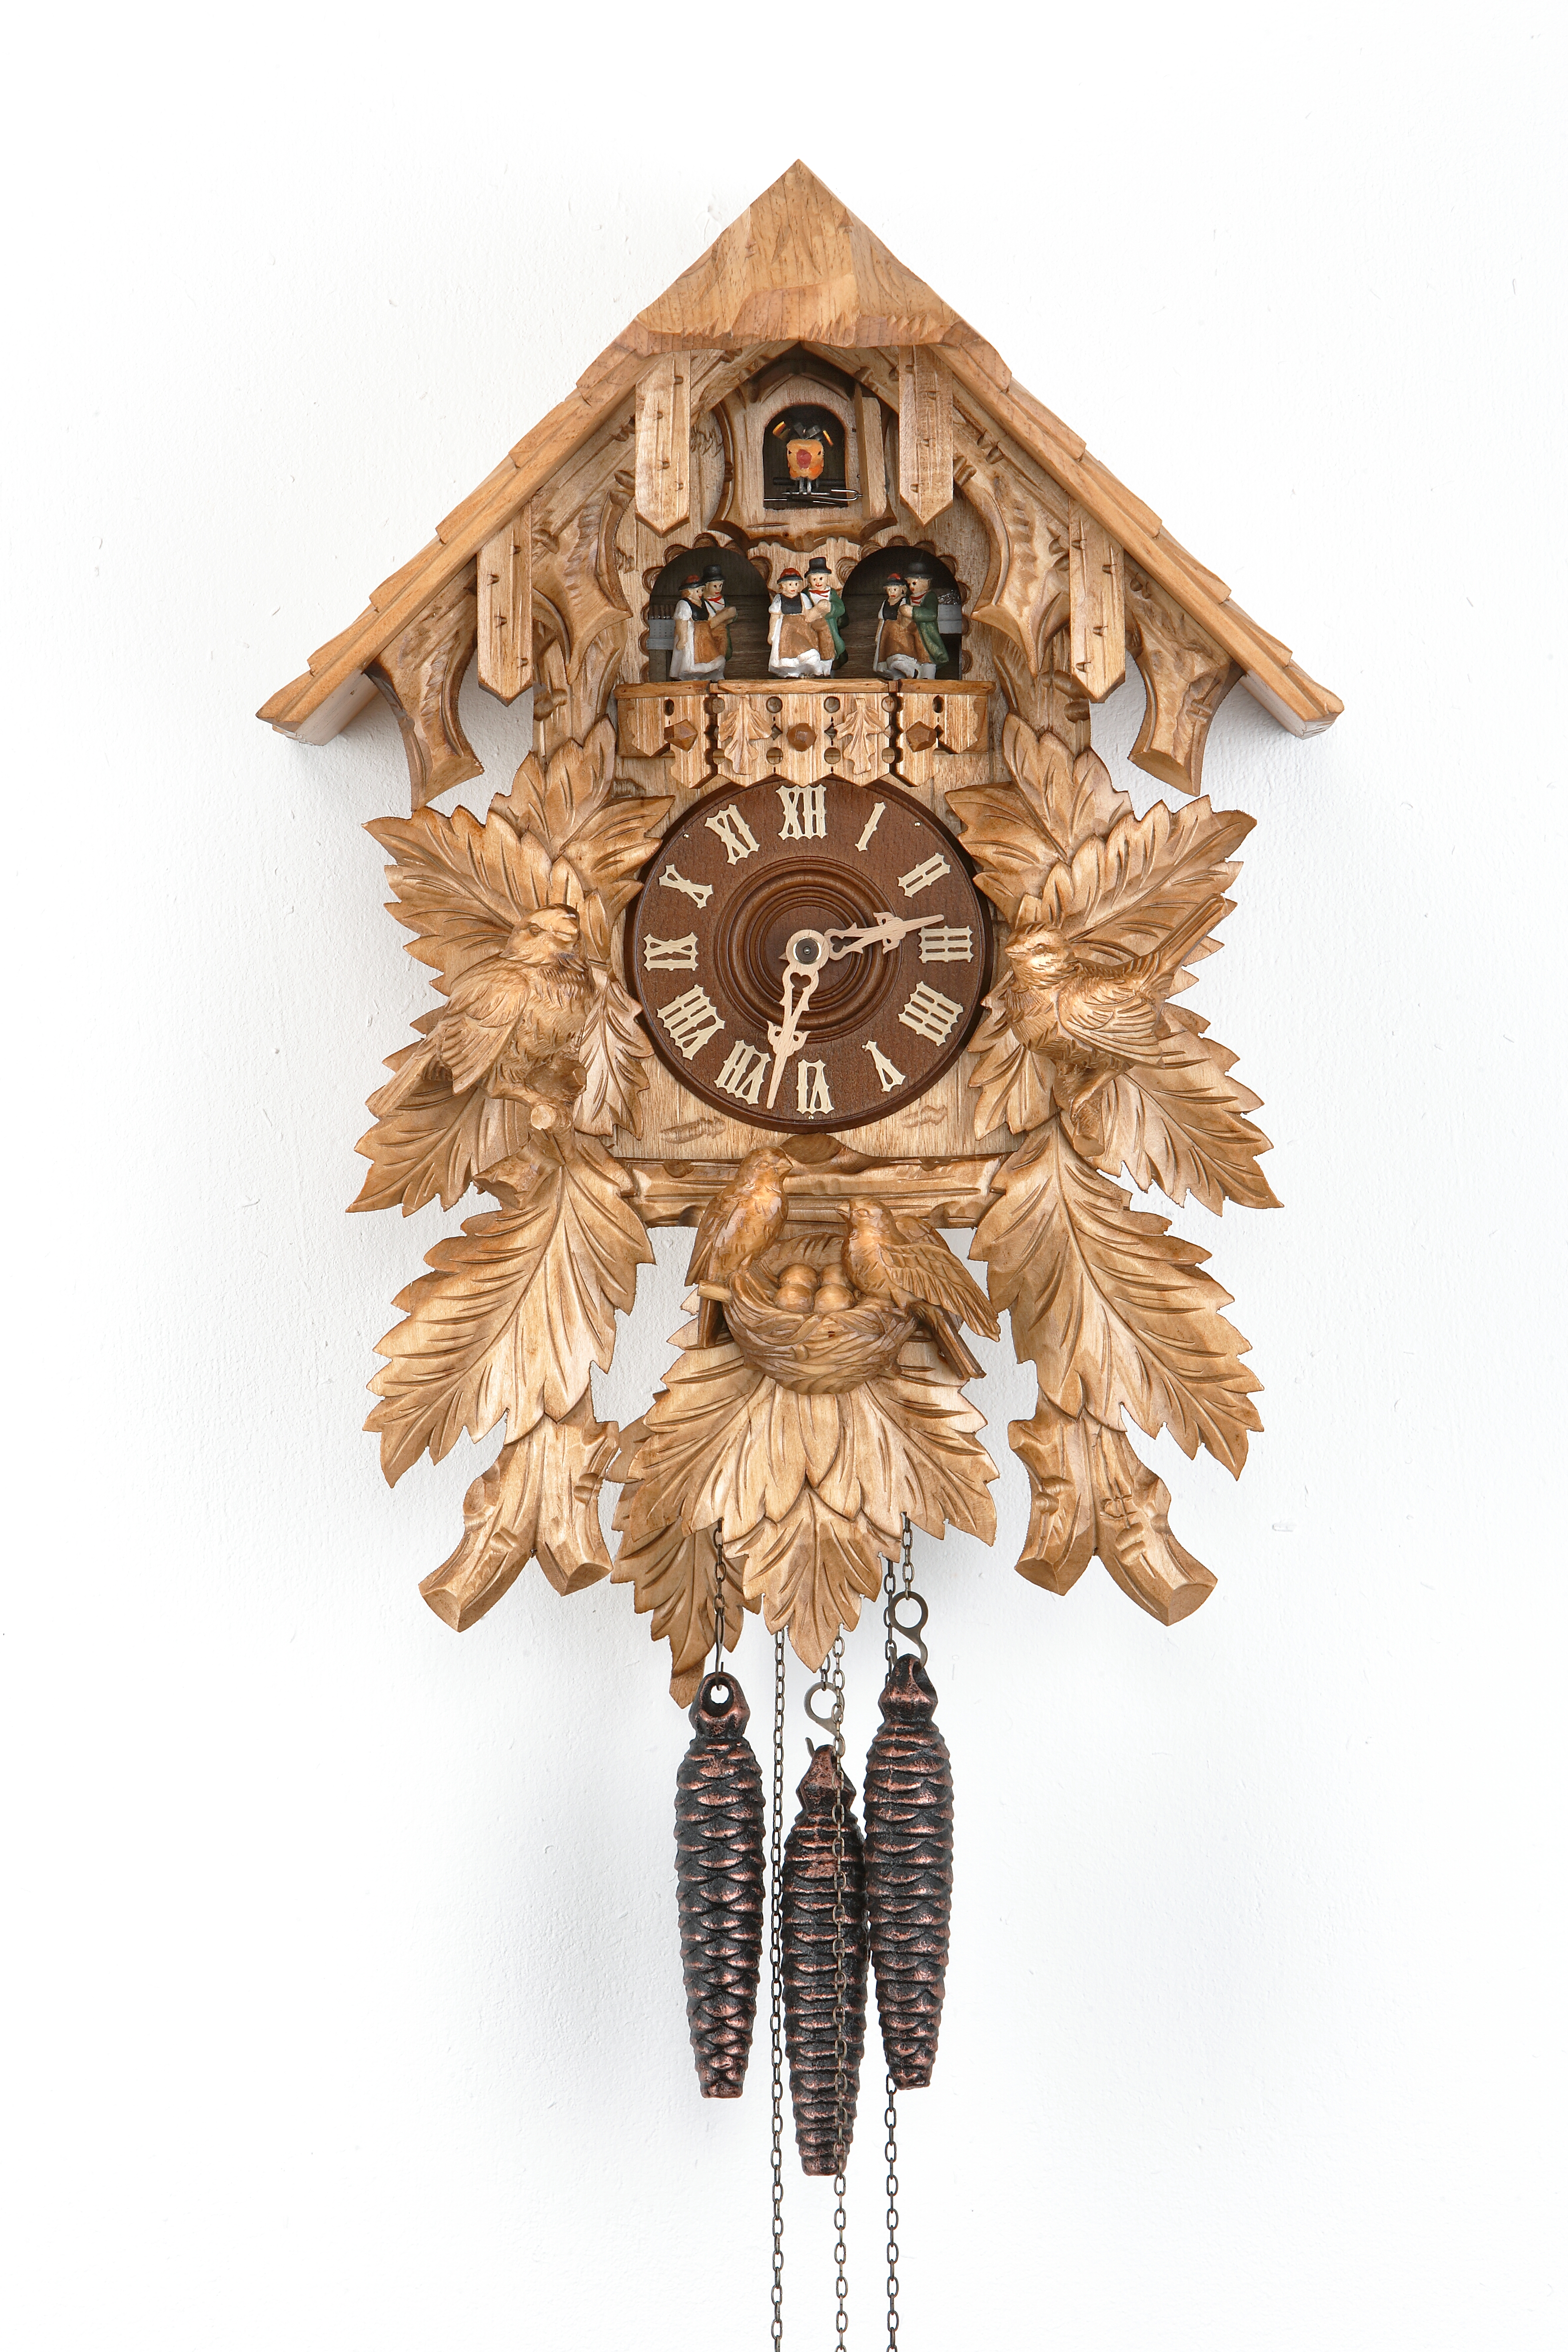 1 Day Music Dancer Cuckoo Clock Black Forest House with bird family